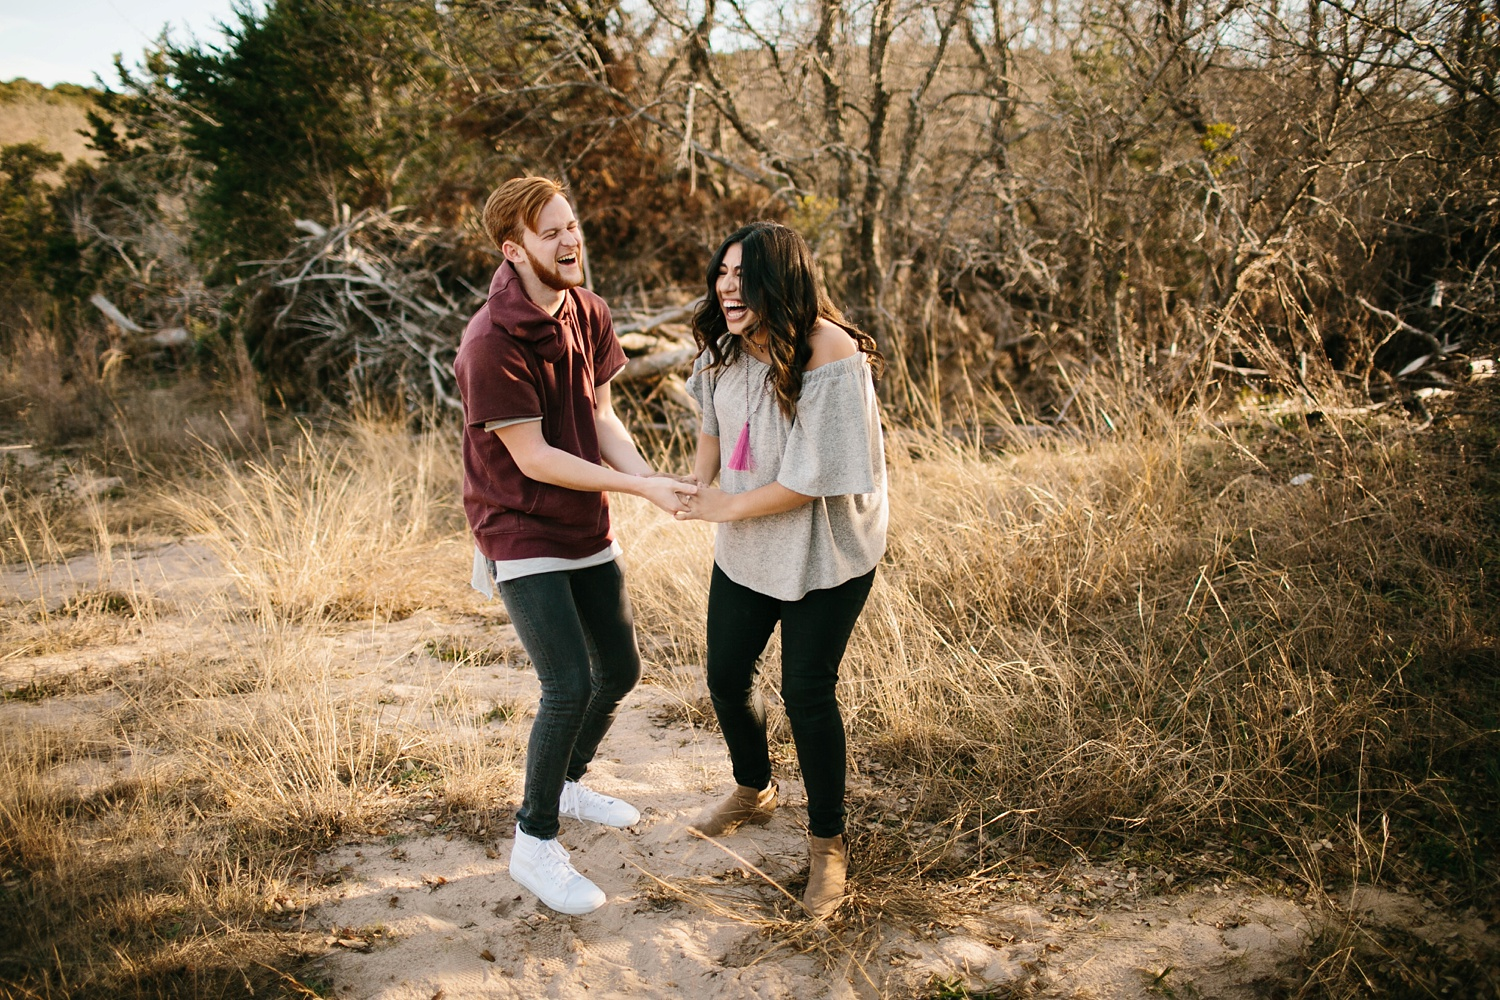 Grant + Lysette - floral dress engagement session by North Texas Wedding Photographer Rachel Meagan Photography015